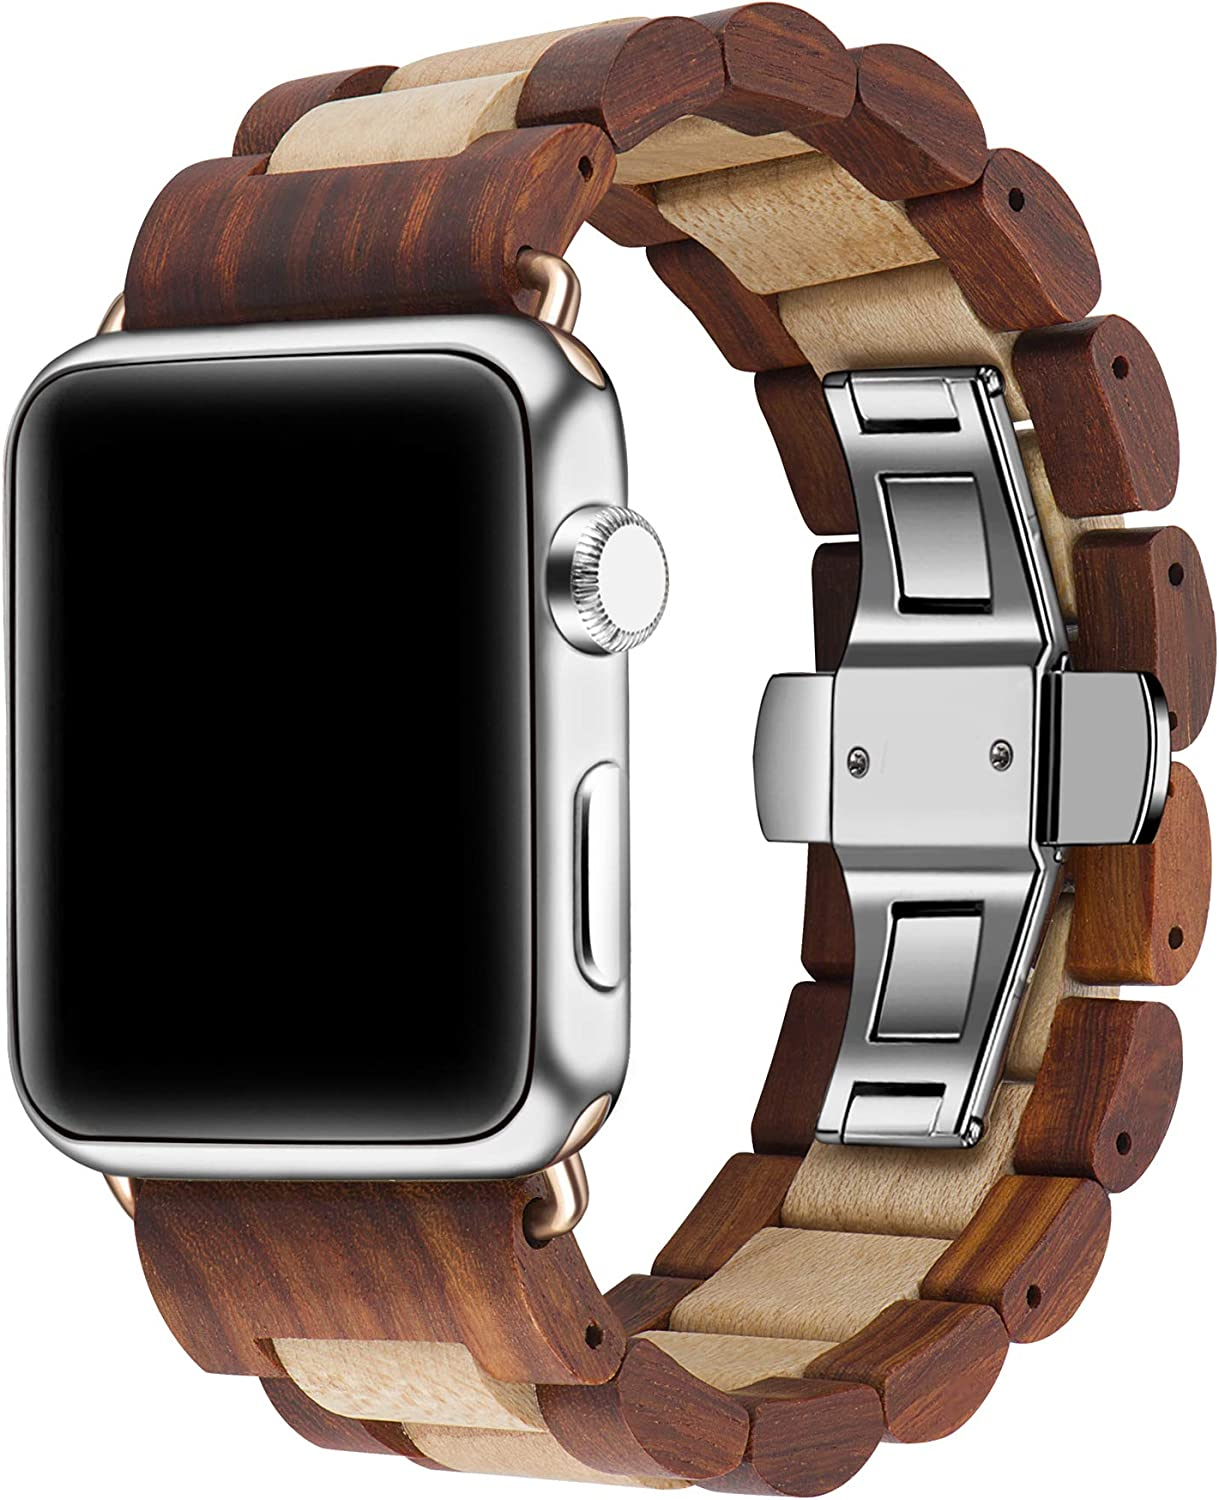 Kinobo Wooden Watch Band Compatible with Apple Watch, 100% Eco-Friendly Natural Hardwood Watch Strap Thickened Wrist Bracelet for iWatch Series 5, 4, 3, 2, 1, Sport, Edition (Sandal + Maple-42mm/44mm)